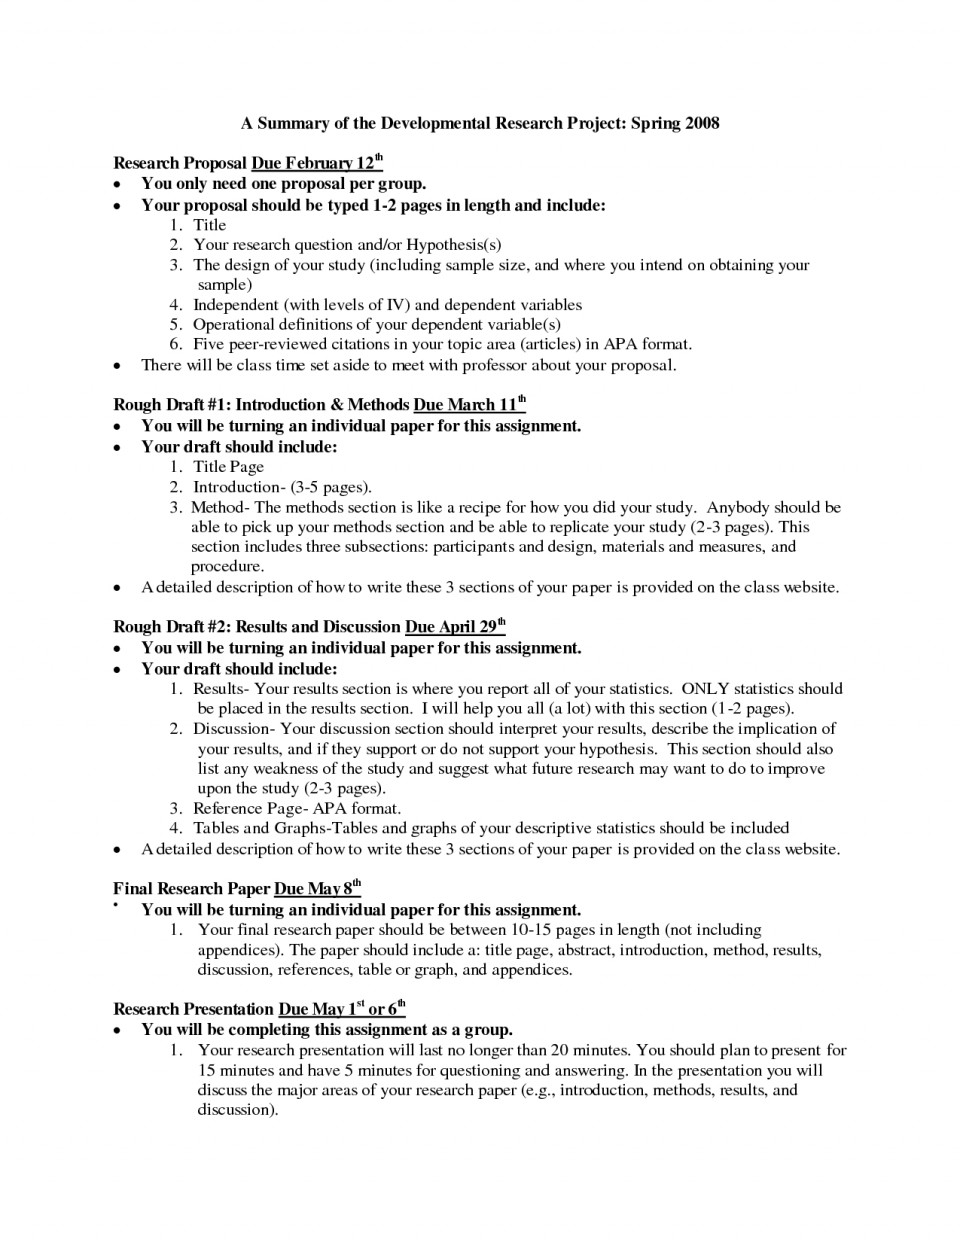 009 Good Topics For Researchs Psychology Undergraduate Resume Unique Sample Of Awesome Research Papers Argumentative In College Interesting Paper The Philippines 960